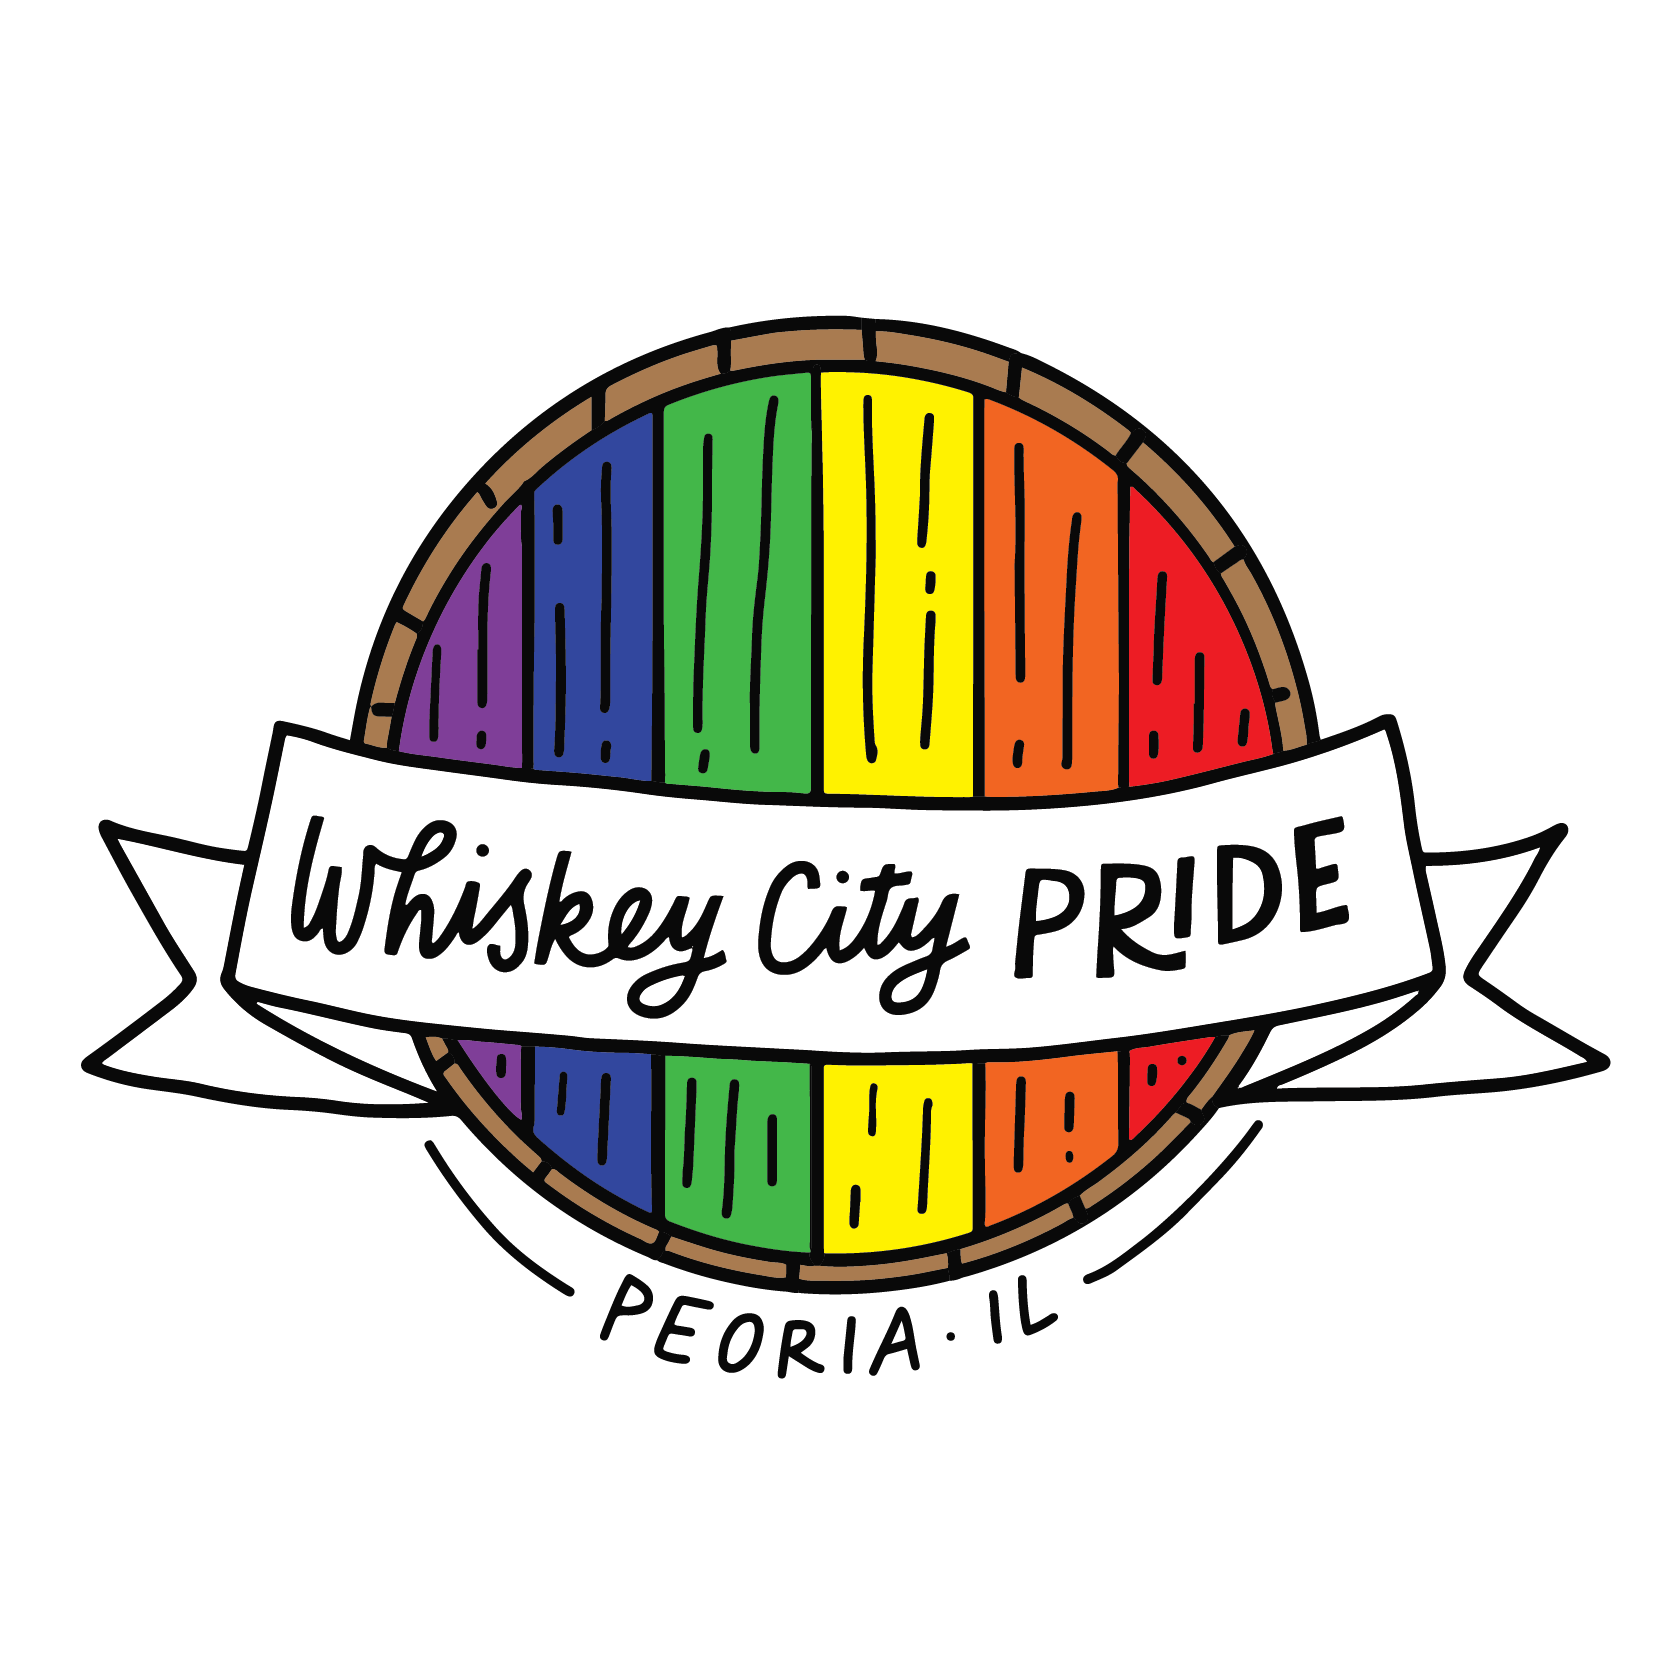 Whiskey City Pride Event Logo Design for Peoria Proud